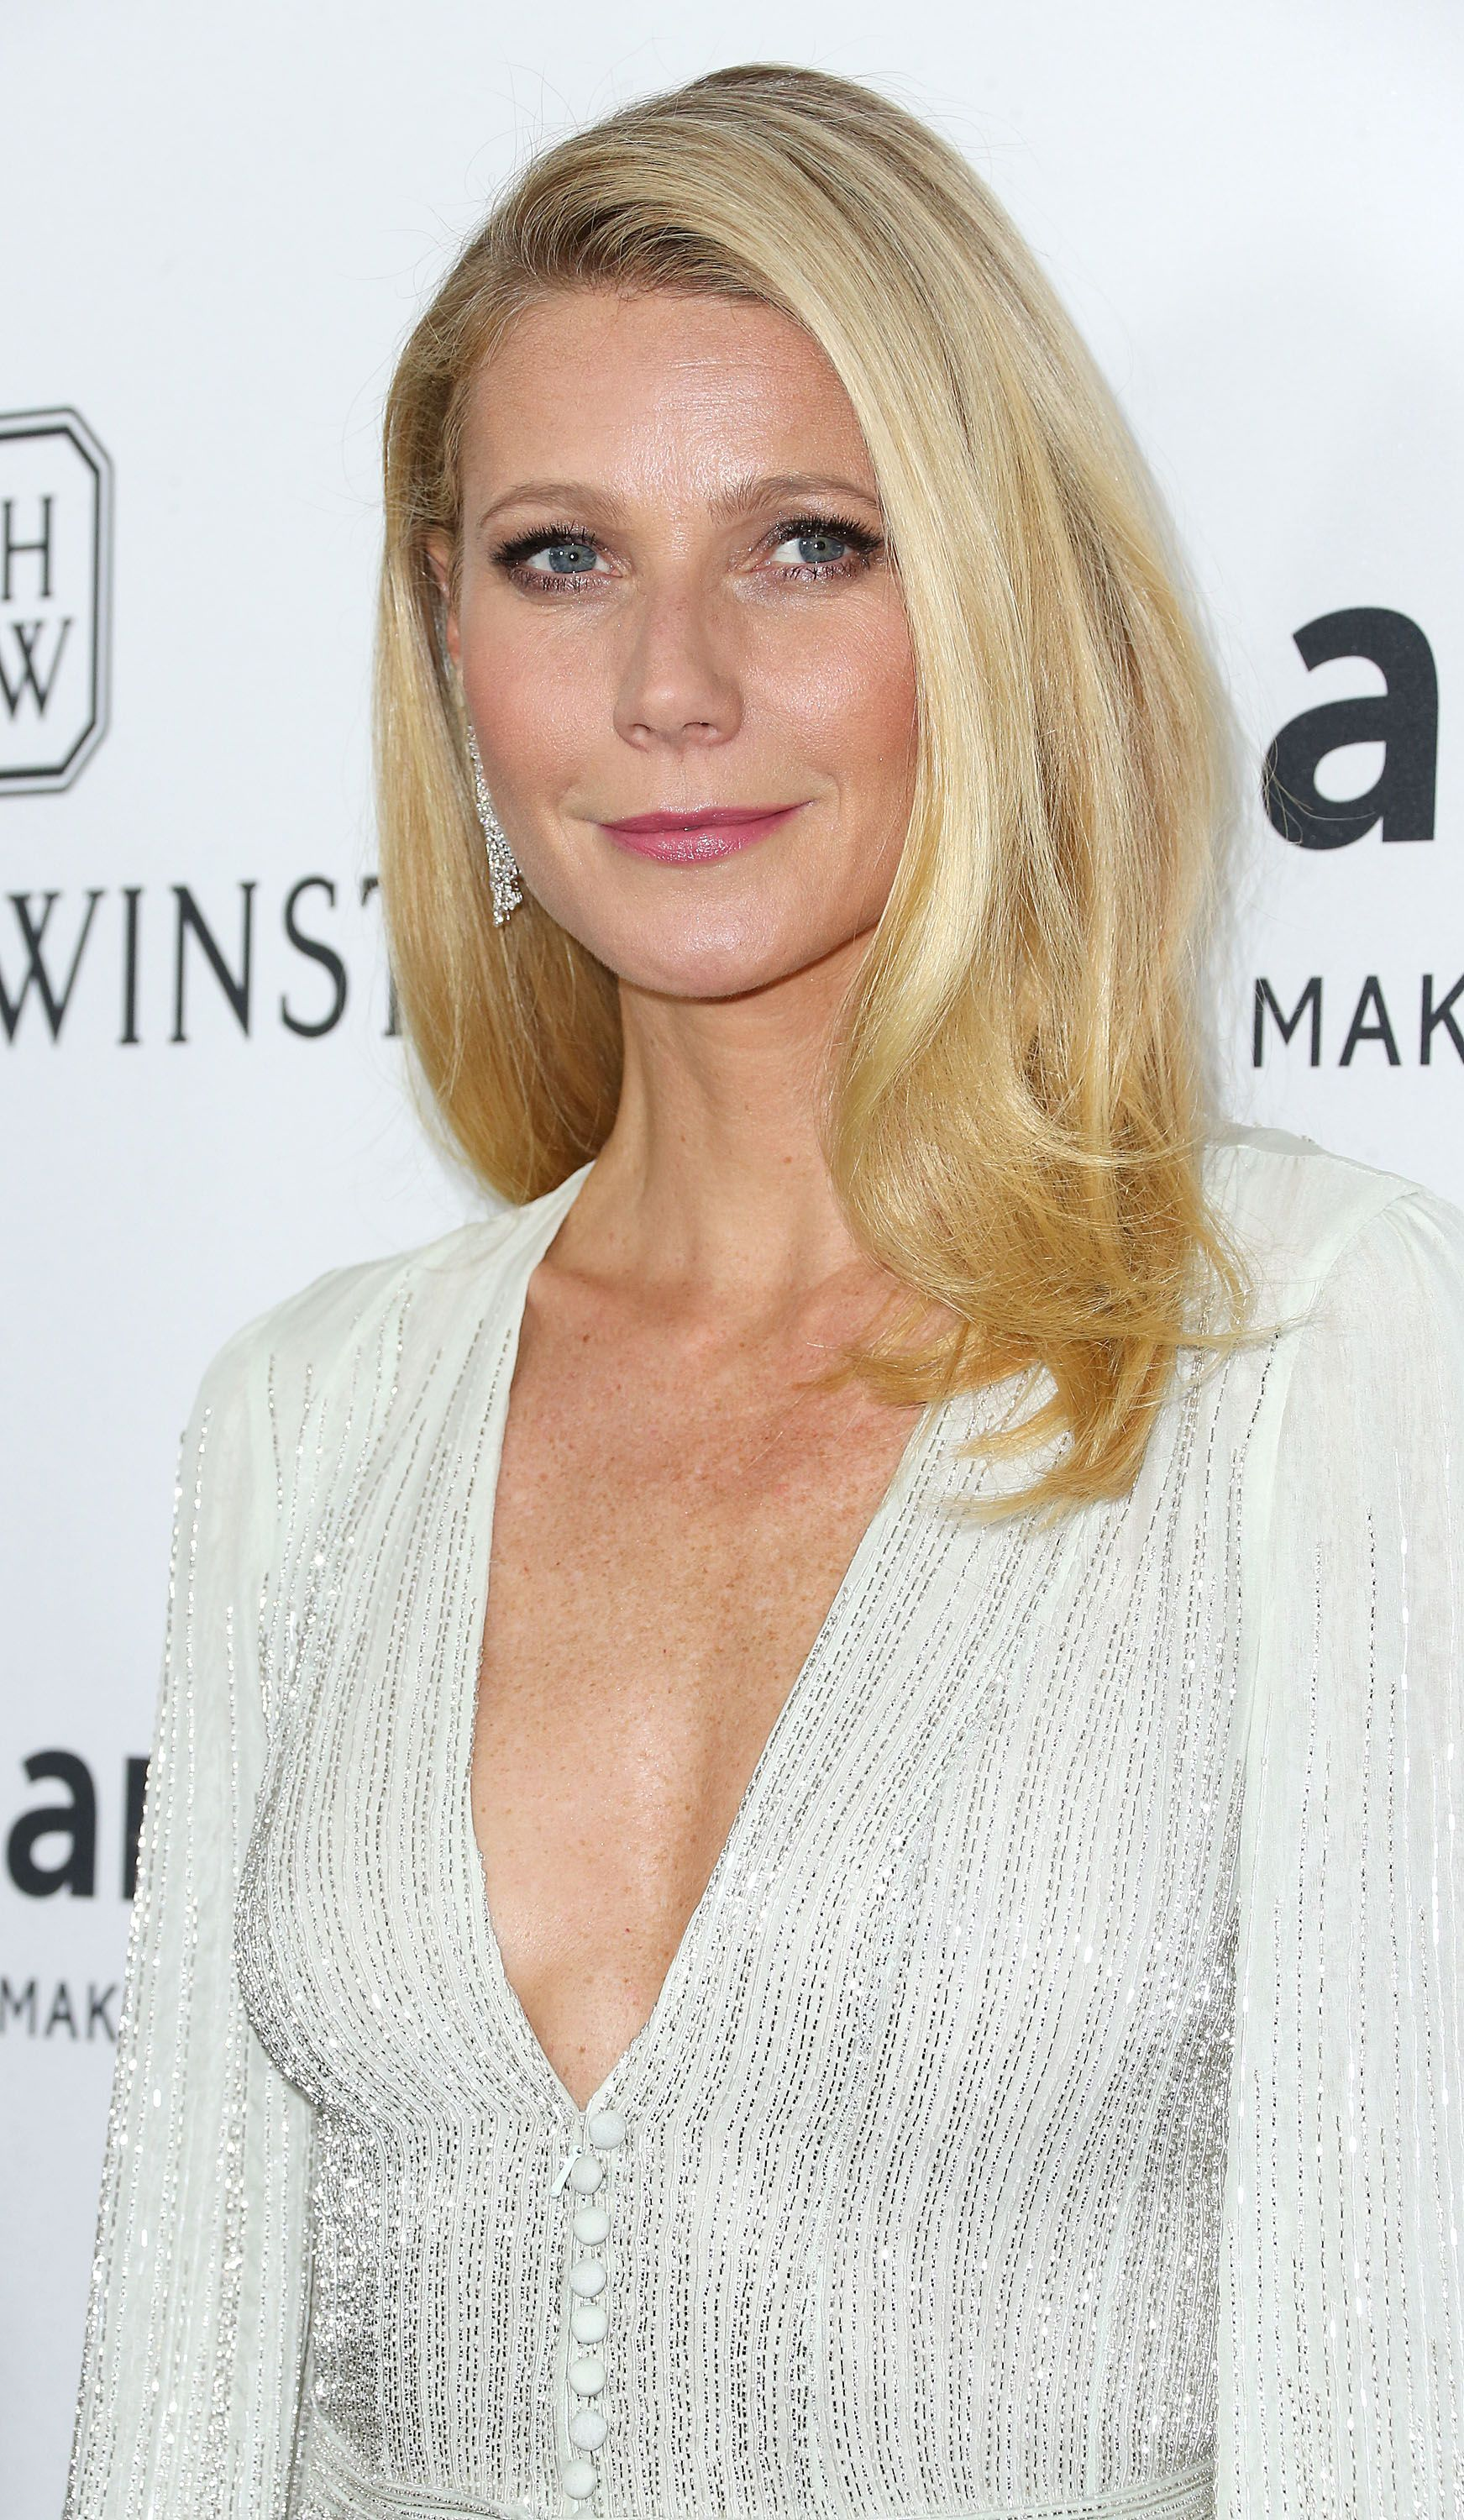 Gwyneth Paltrow at the amfAR's Inspiration Gala Los Angeles in 2015 | Source: Getty Images